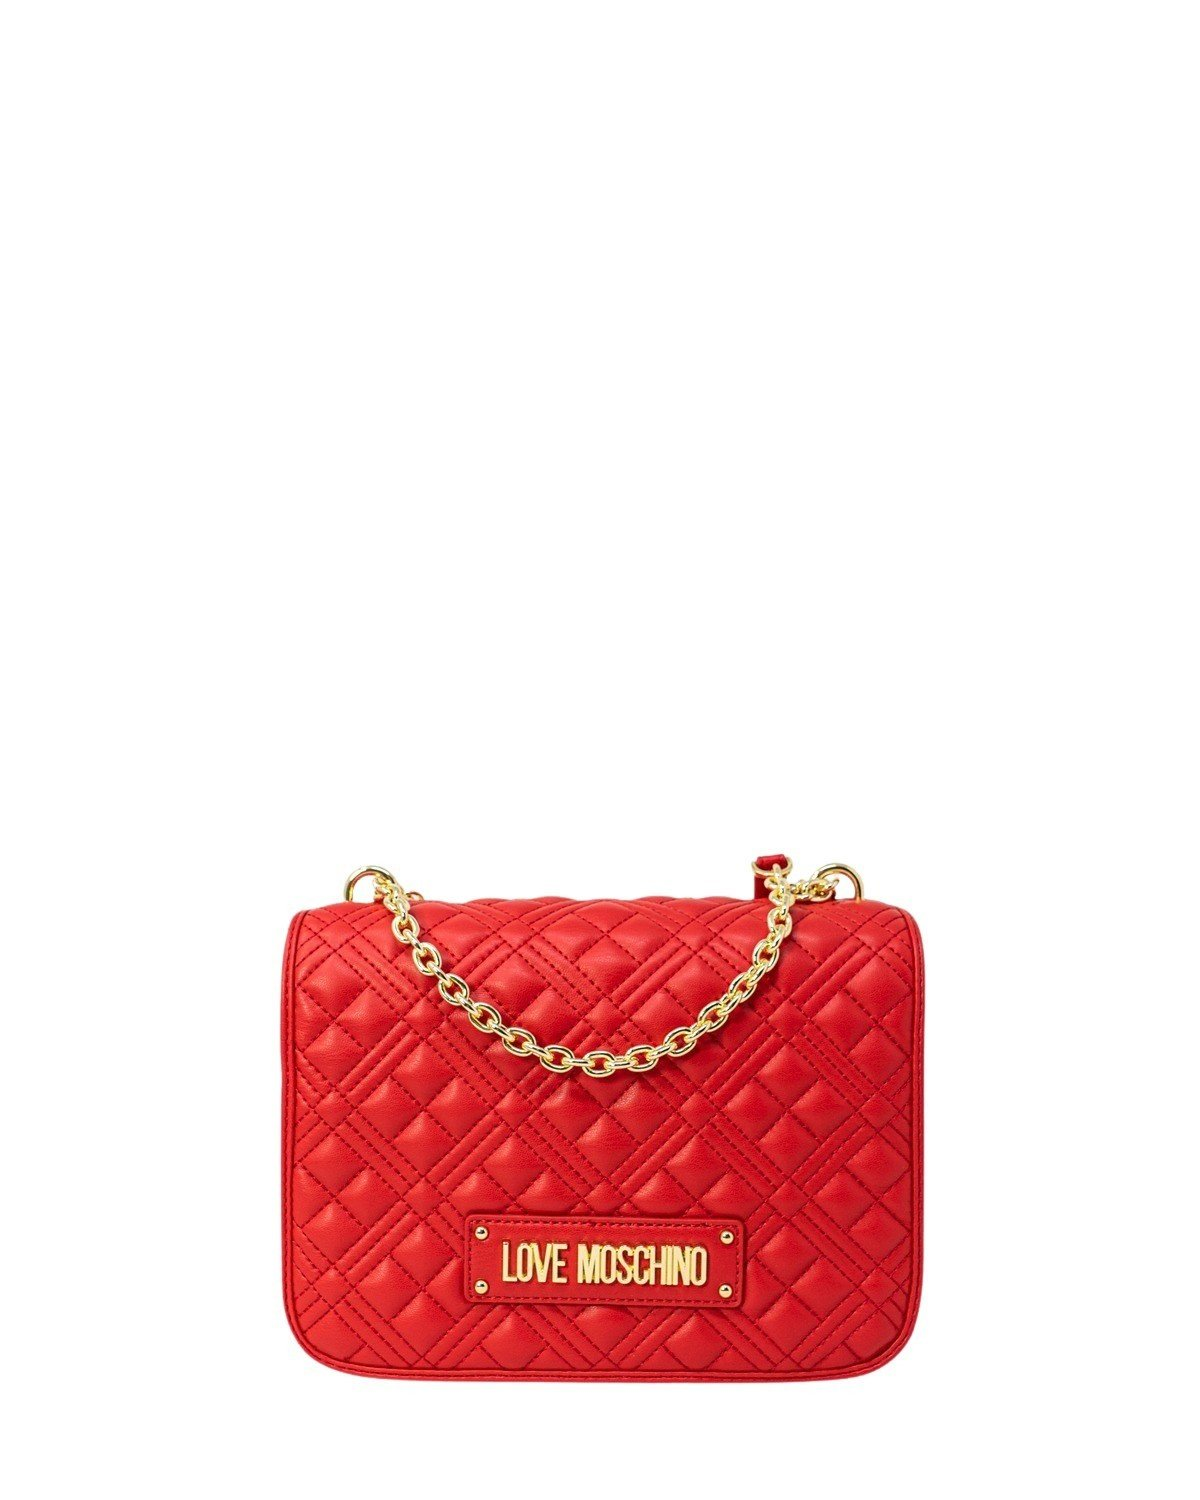 Love Moschino Women's Bag Various Colours 305393 - red UNICA